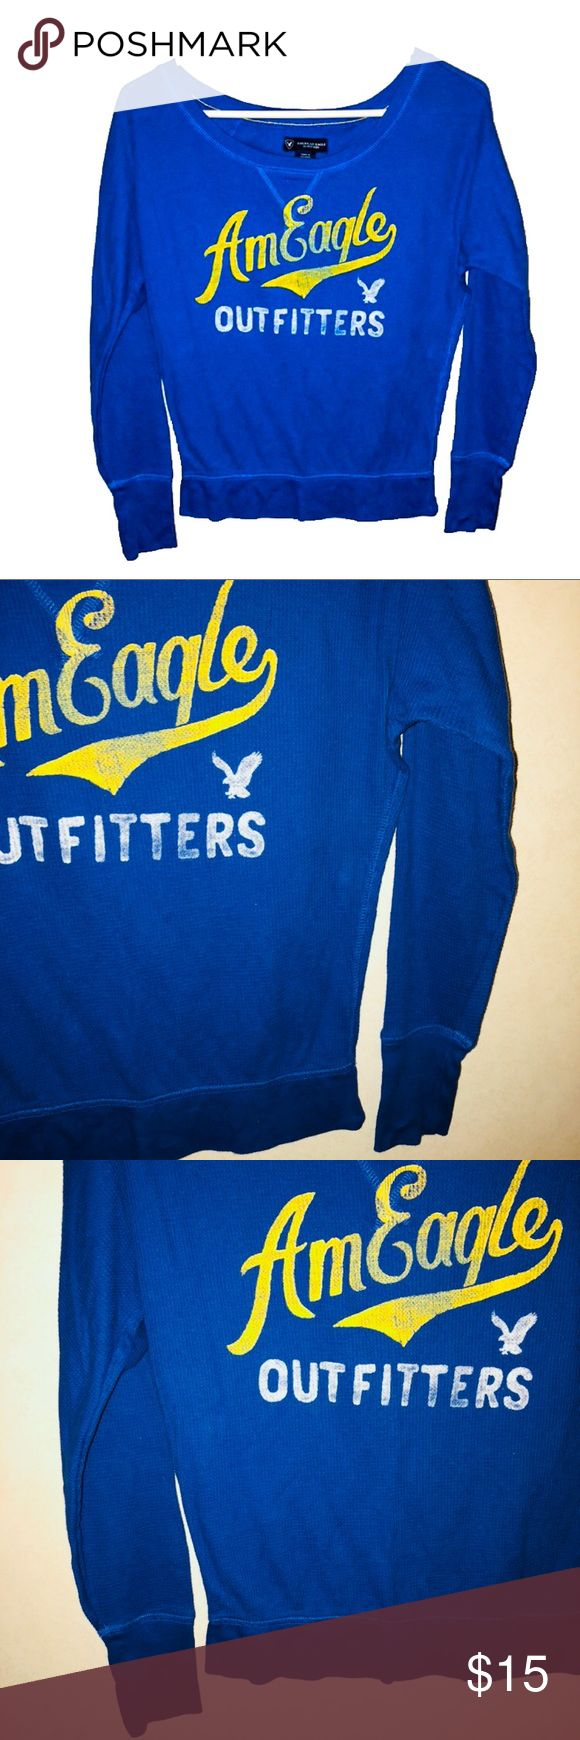 XS American Eagle Outfitters Raglan Thermal Brand: American Eagle Outfitters  Size: Extra Small  Details: very light weight. Royal blue with yellow and white graphic logo across front. Scoop slouchy neck line. Long sleeve thermal waffle material. Raglan style so it's slightly oversized as well  Condition: Like New  Material: 60% cotton 40% polyester   Feel free to bundle to SAVE! Best offers are welcome! American Eagle Outfitters Tops Tees - Long Sleeve